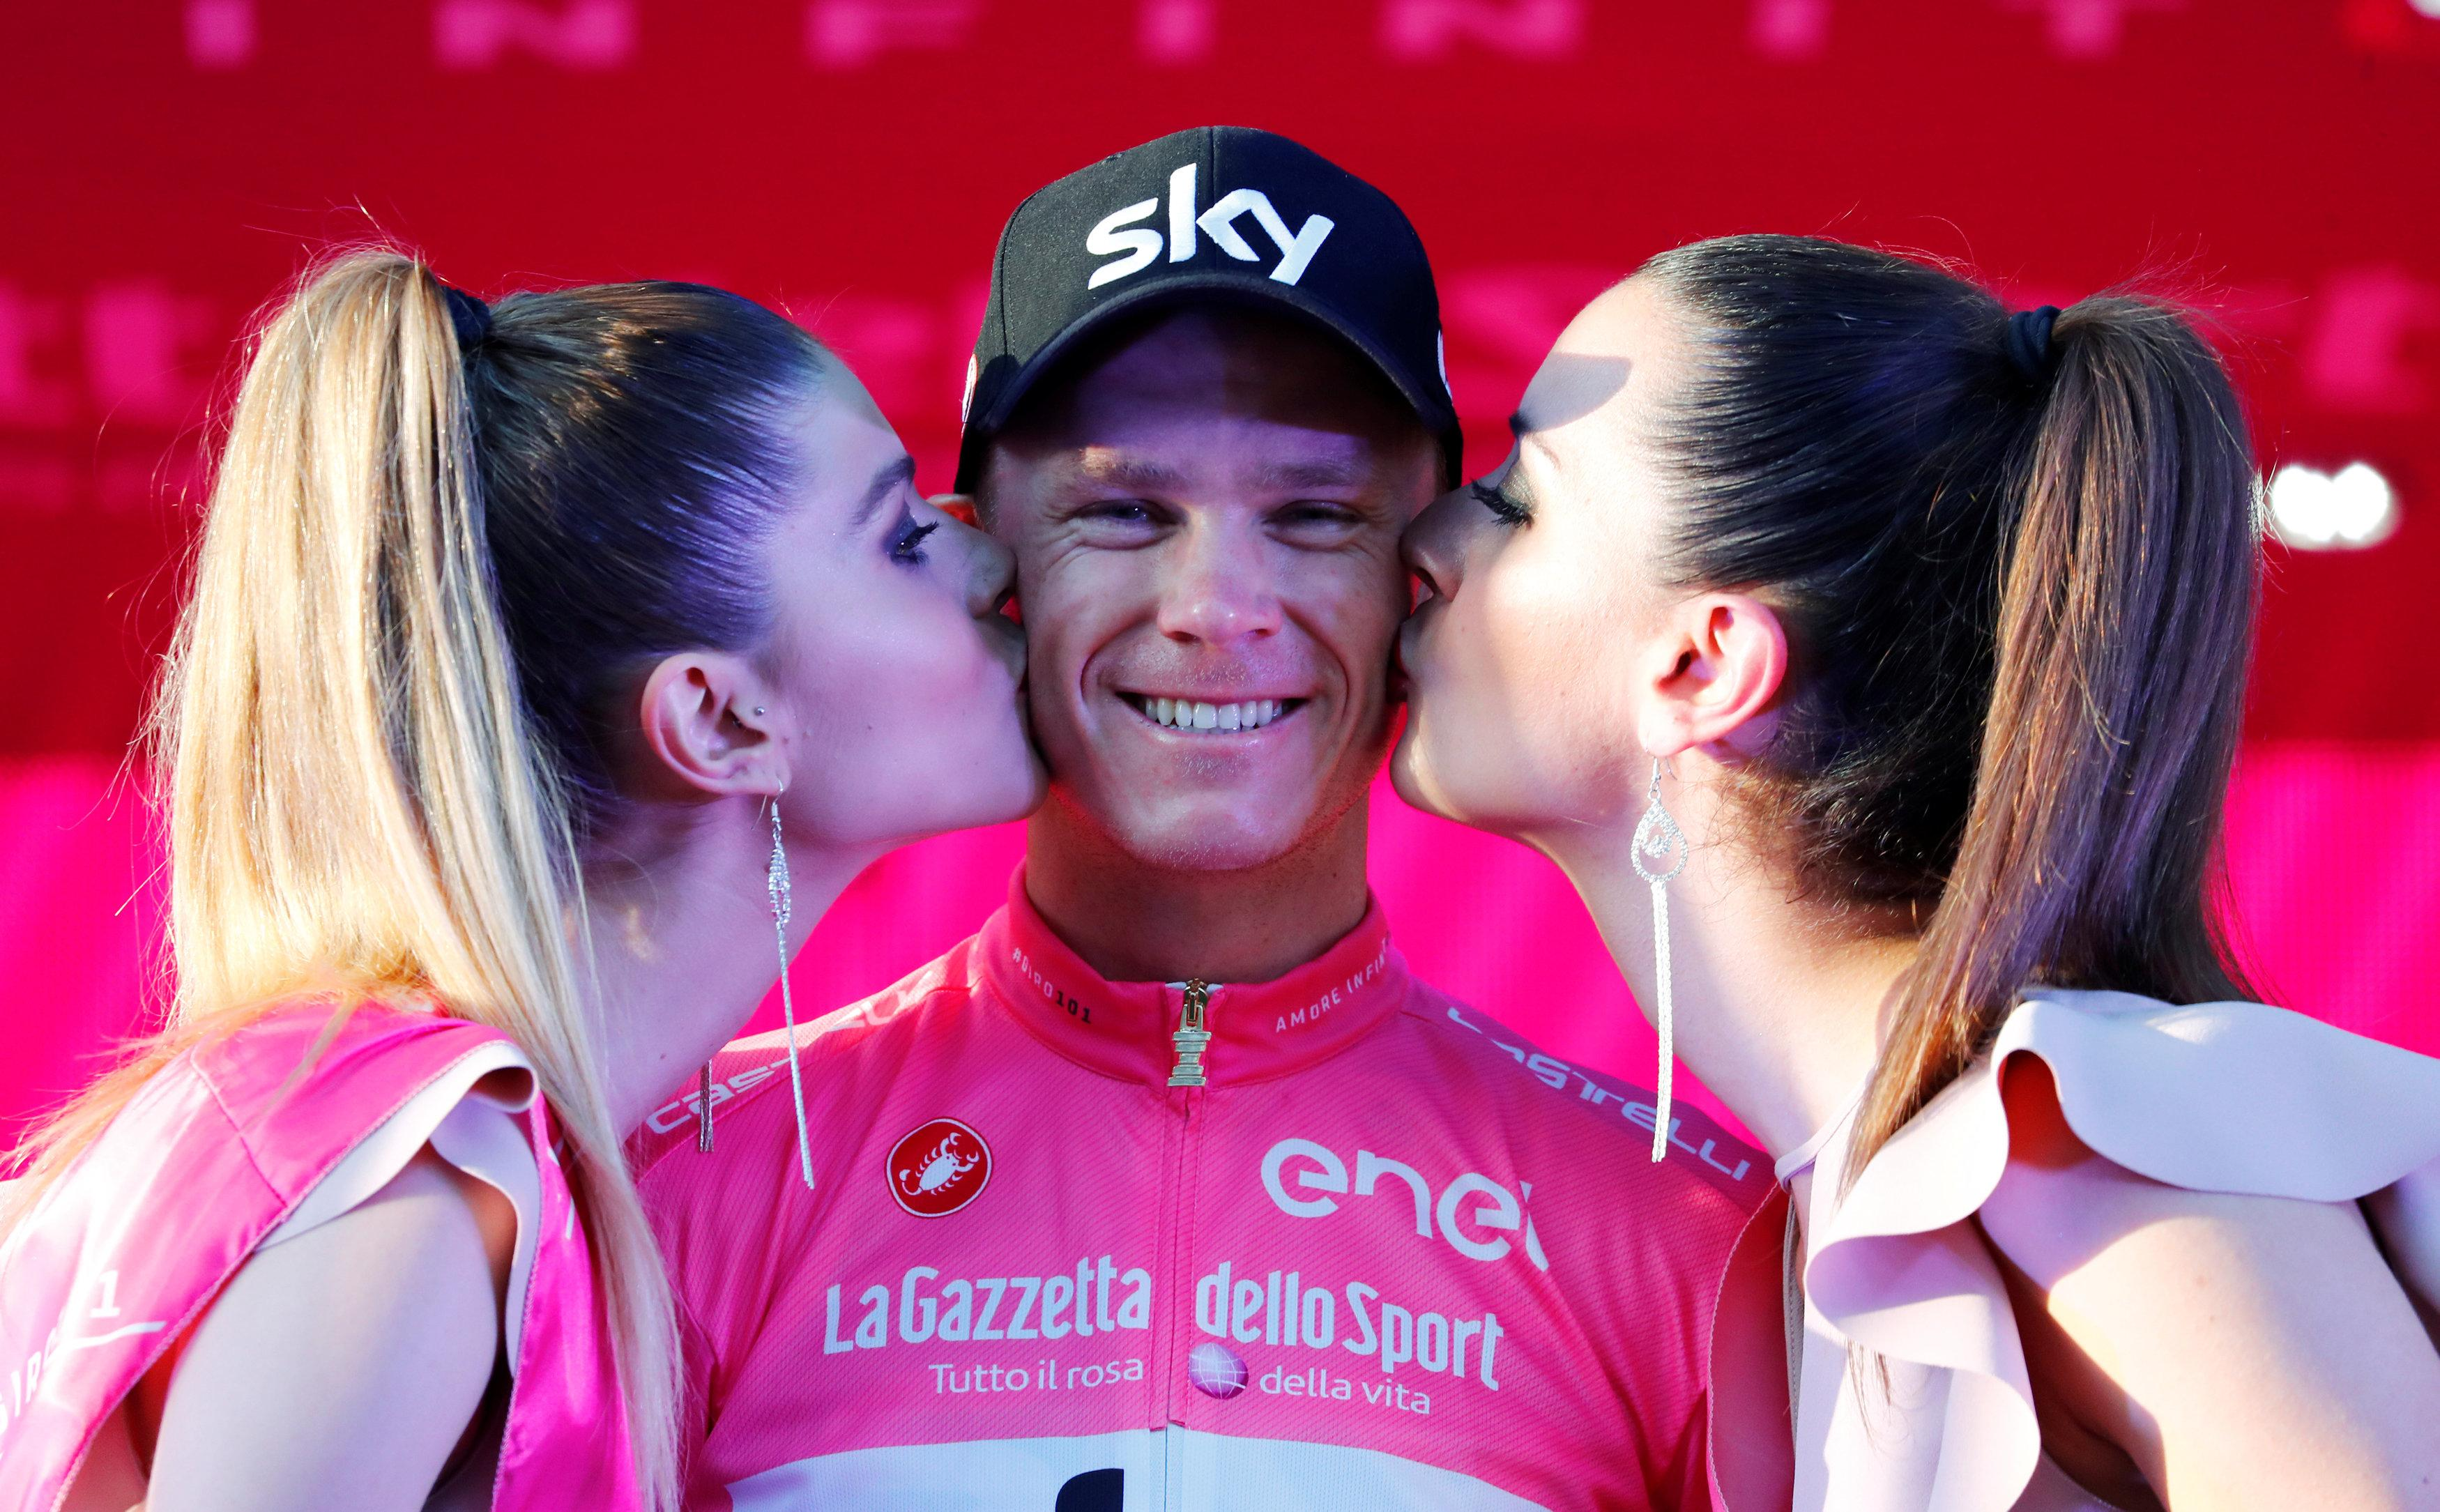 Froome became the first Brit to win the Giro d'Italia back in May